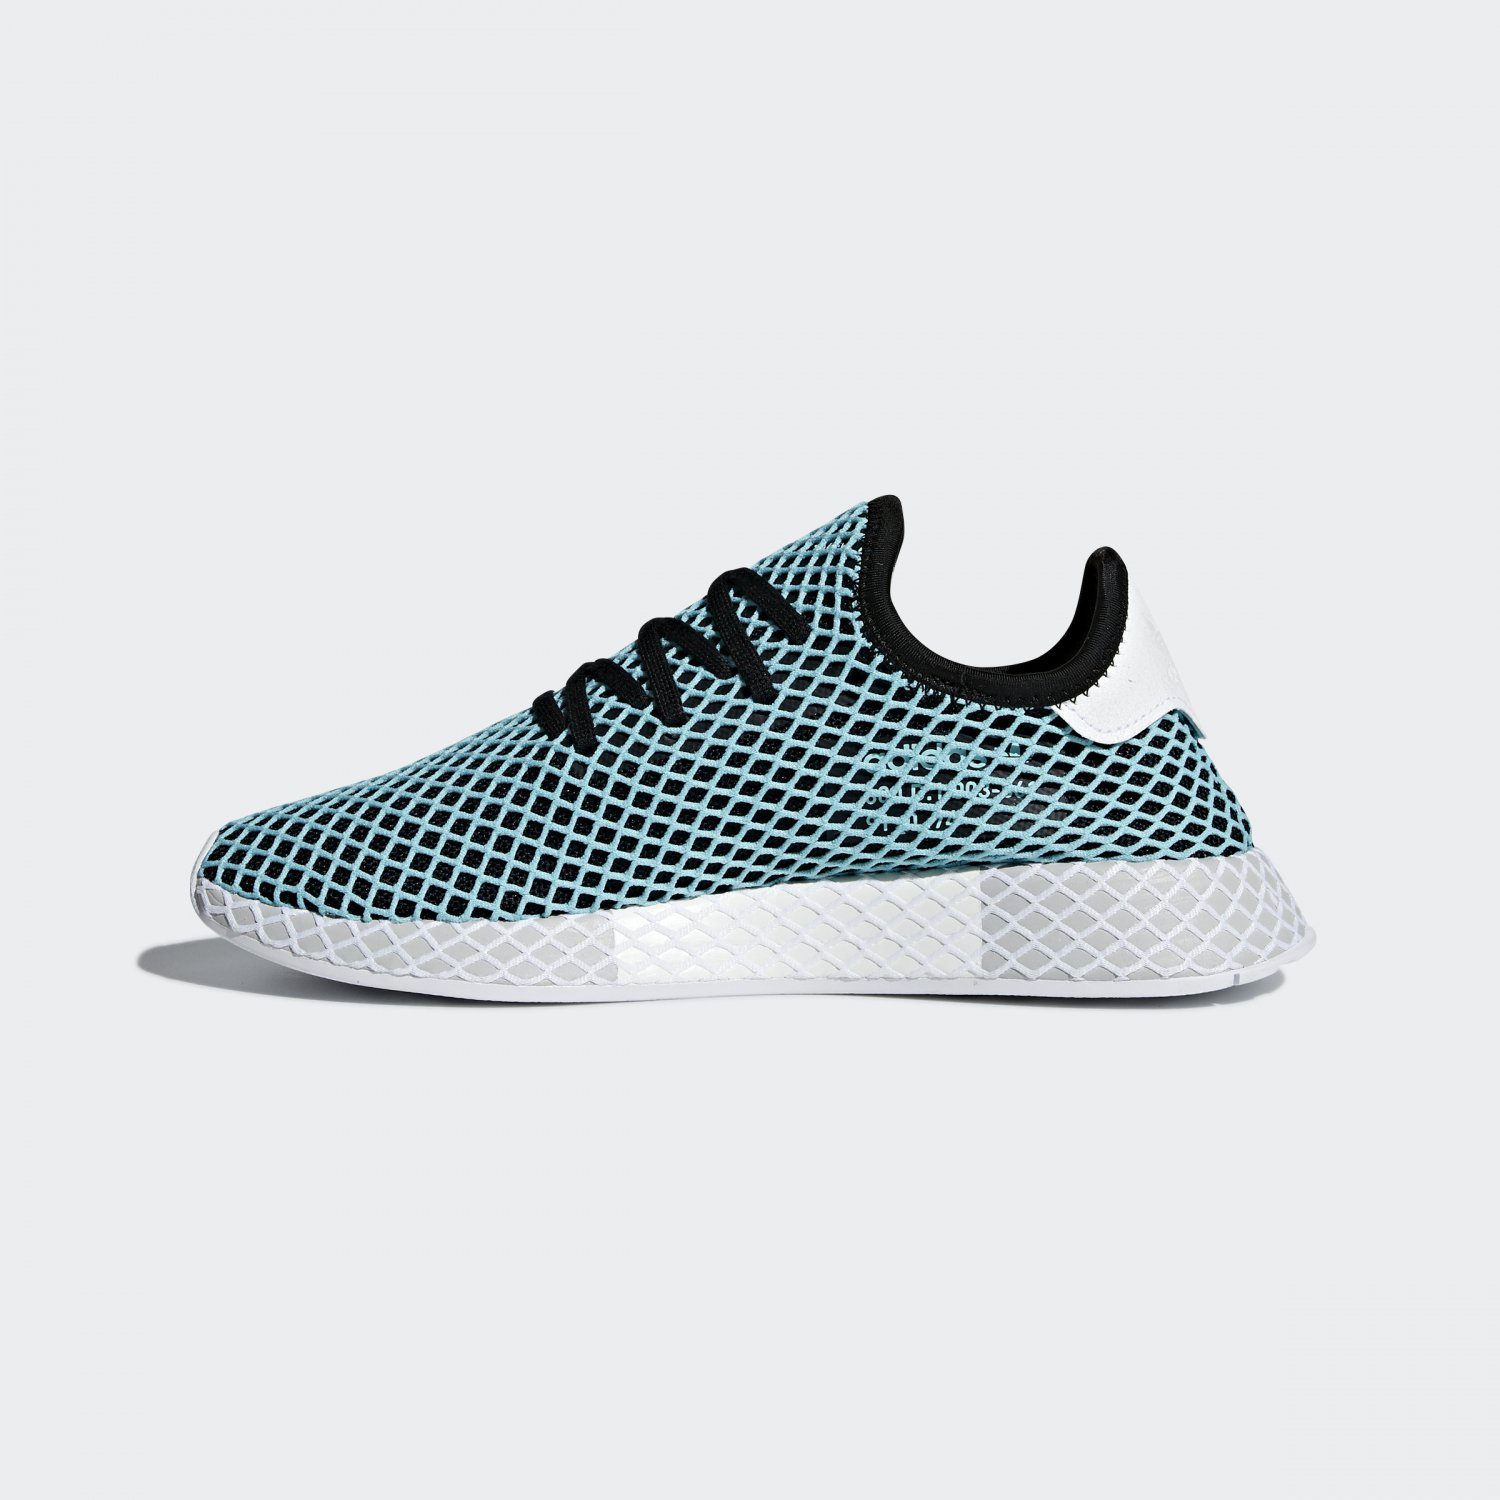 official photos fb2aa 98fa0 adidas-deerupt-runner-parley-cq2623-release-20180528